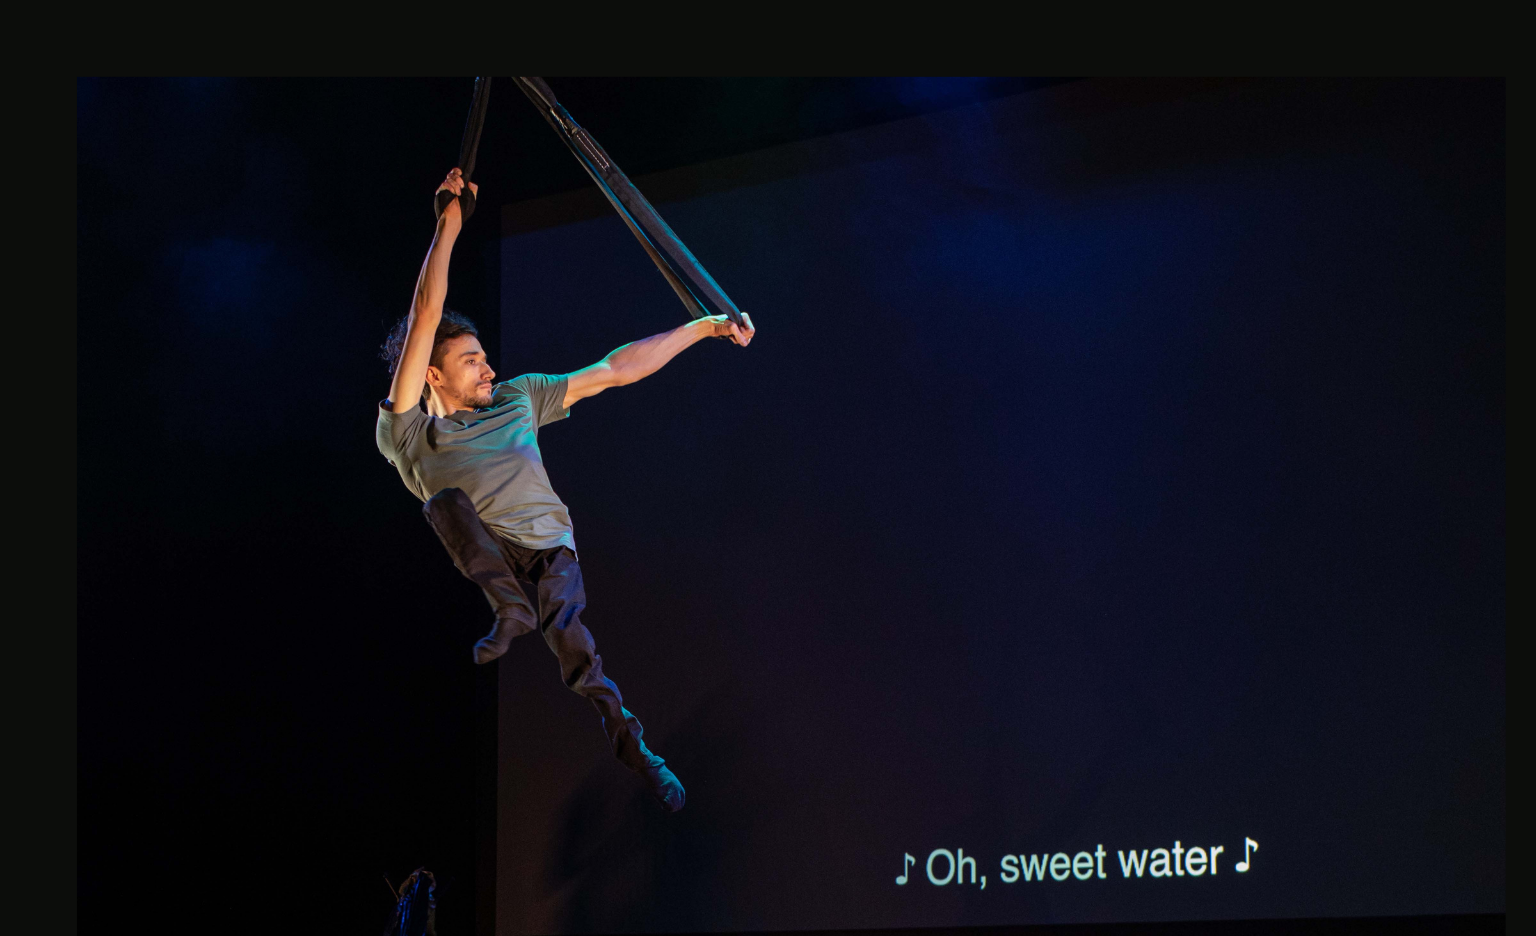 """A white man in his twenties in the air above the the stage by holding onto black straps. He wears a grey T-shirt and black trousers. His thin legs dangle below him as he flies, looking strong. In the background, white text on a black screen tells us that a song is playing in this moment, with the following lyrics: """"Oh, sweet water""""."""